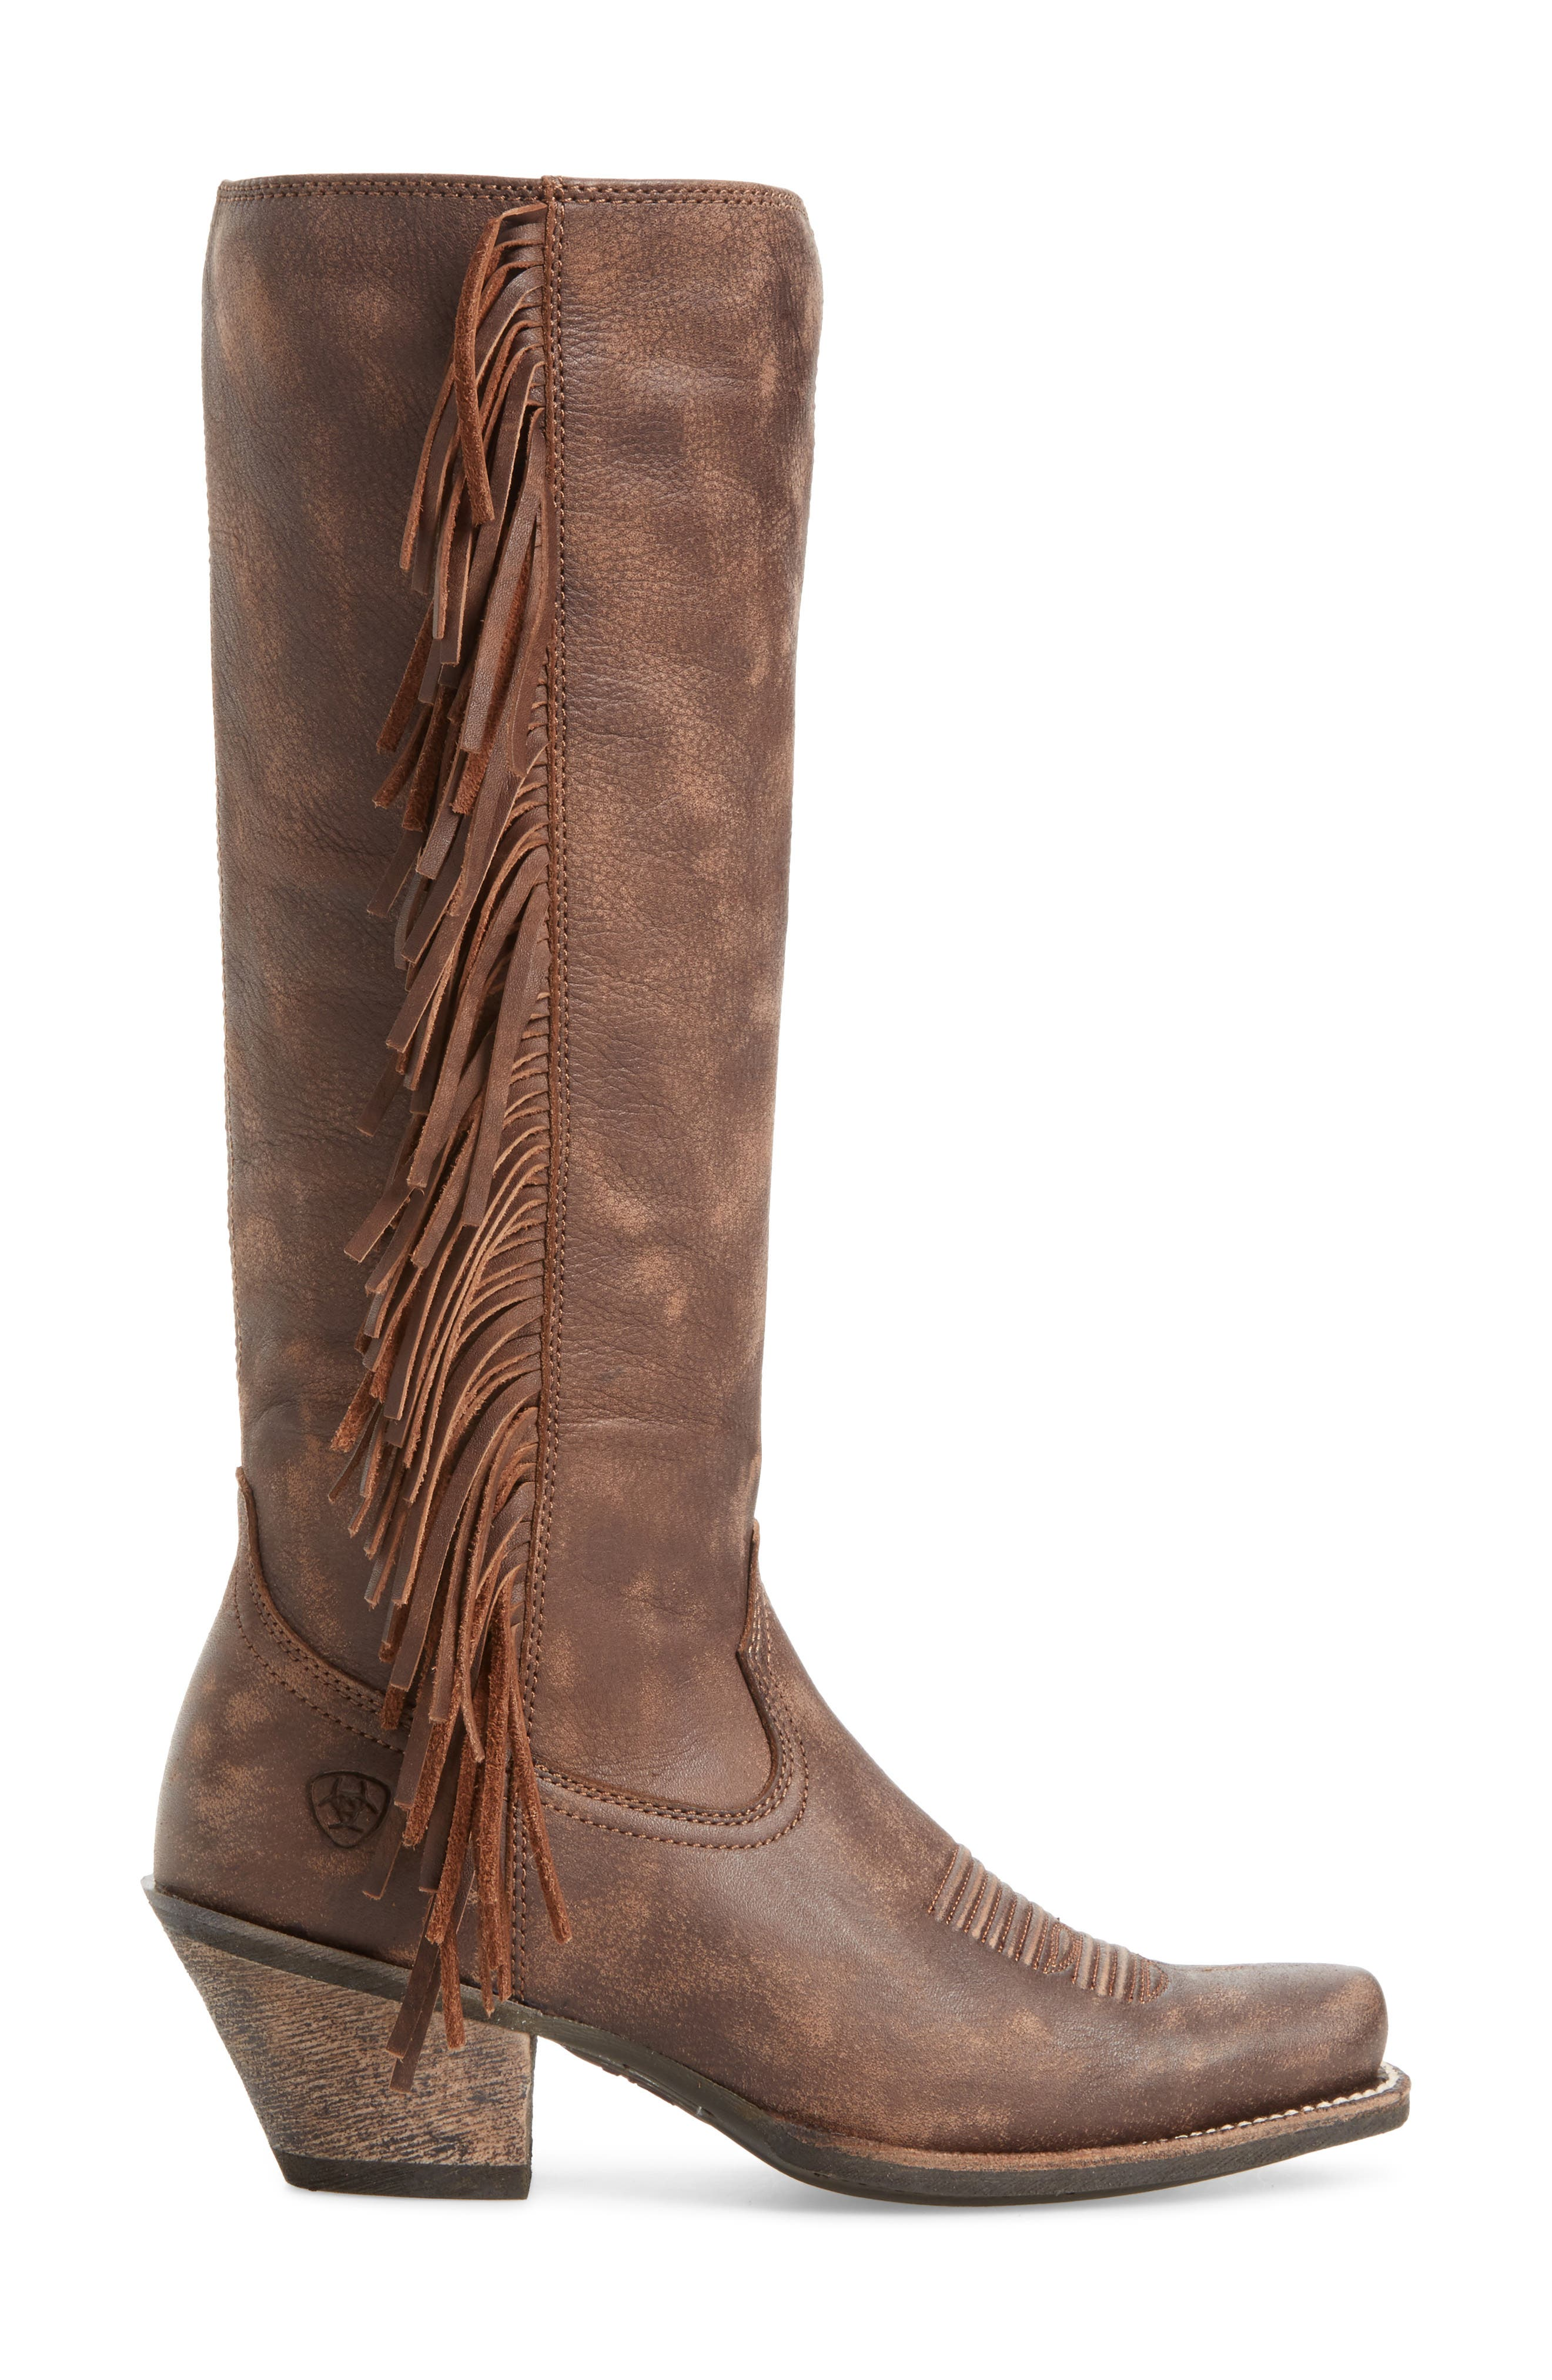 Leyton Fringe Western Boot,                             Alternate thumbnail 3, color,                             TACK ROOM CHOCOLATE LEATHER